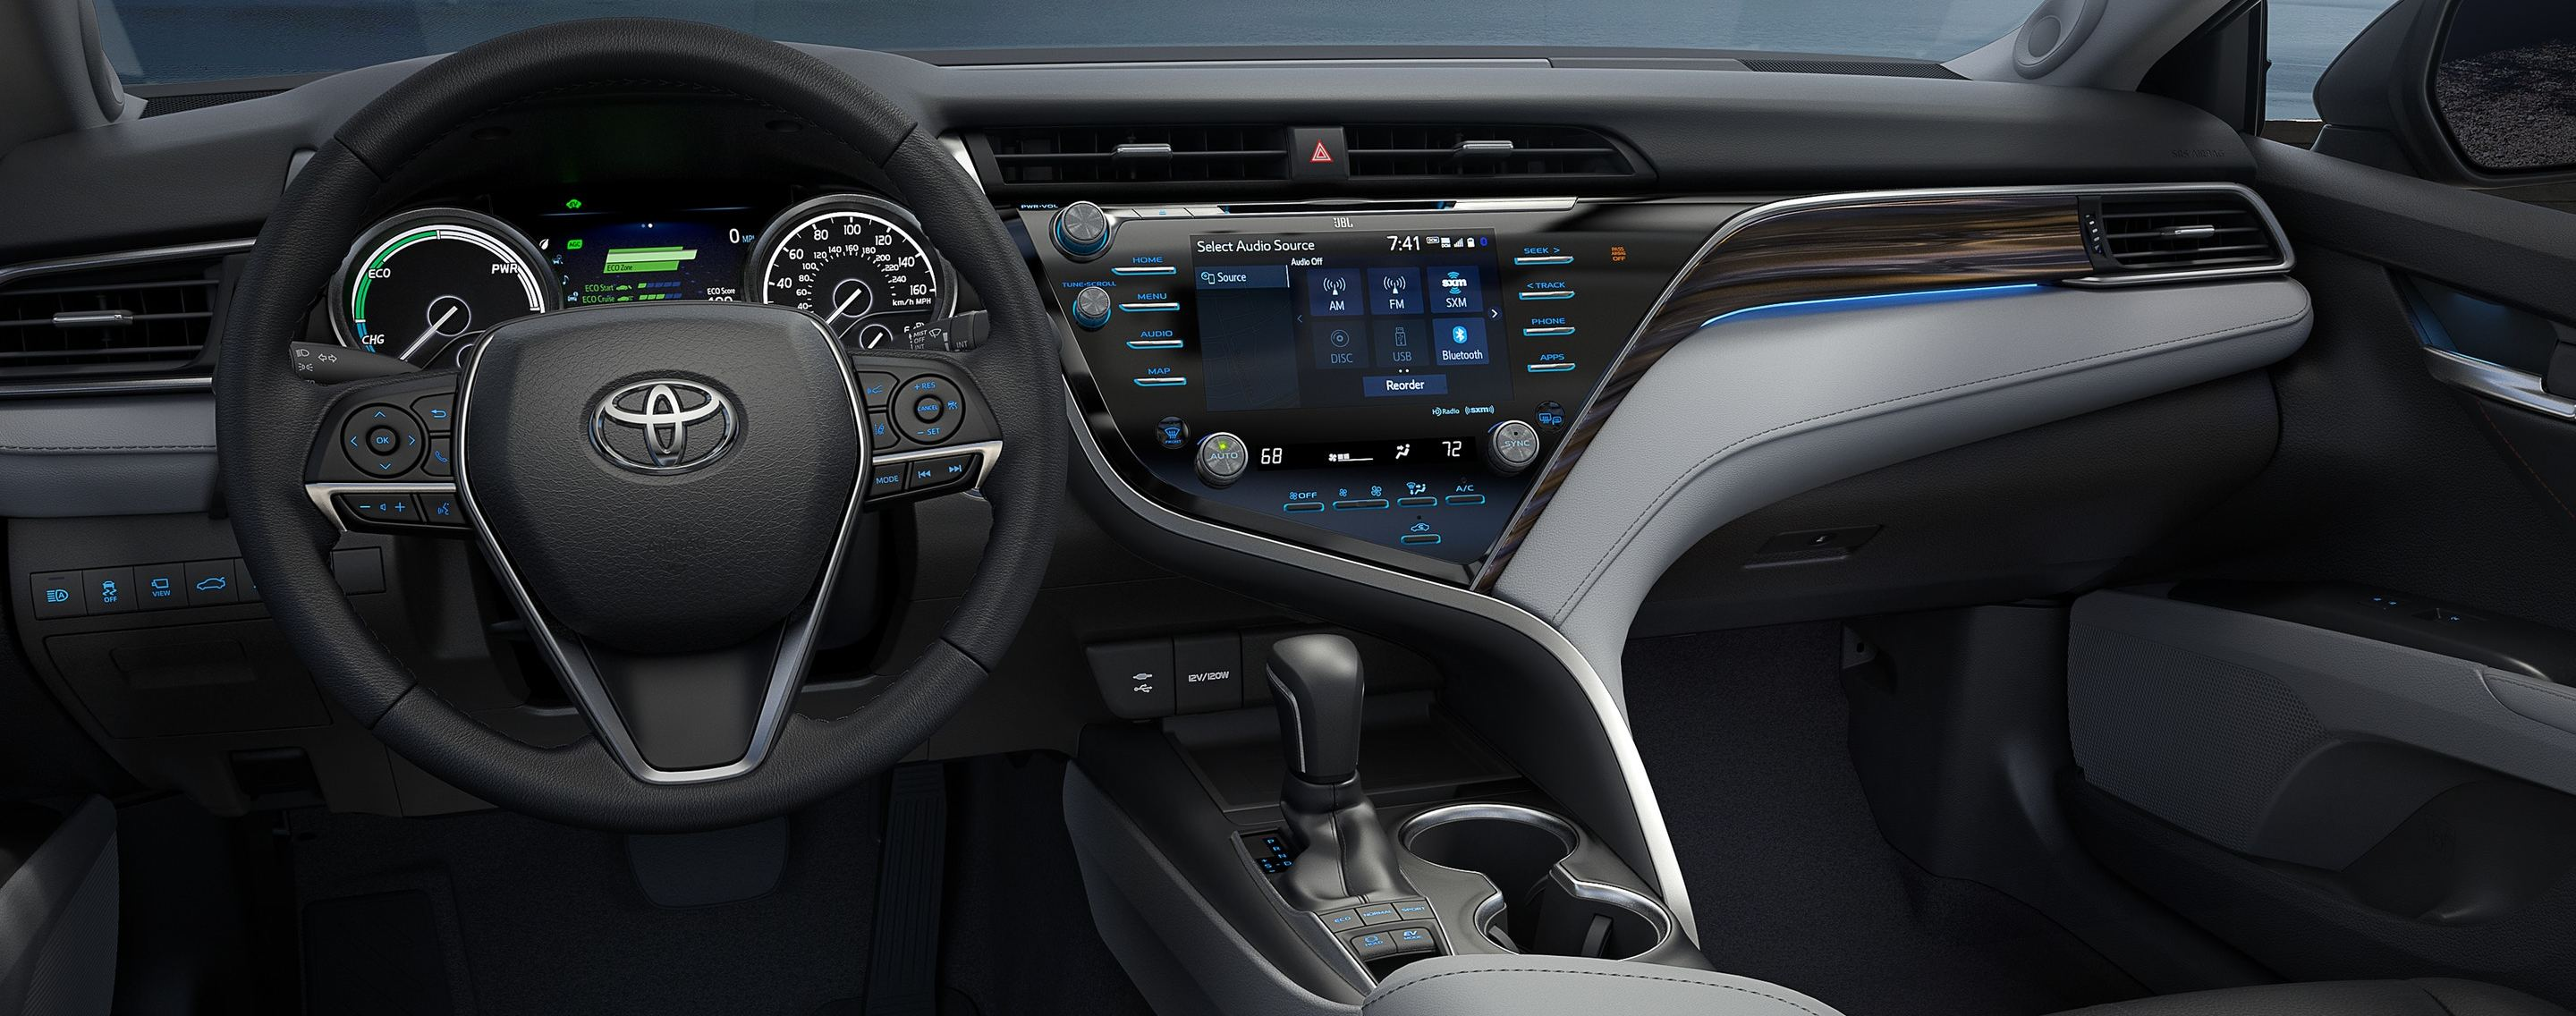 2020 Toyota Camry Dashboard with Technology